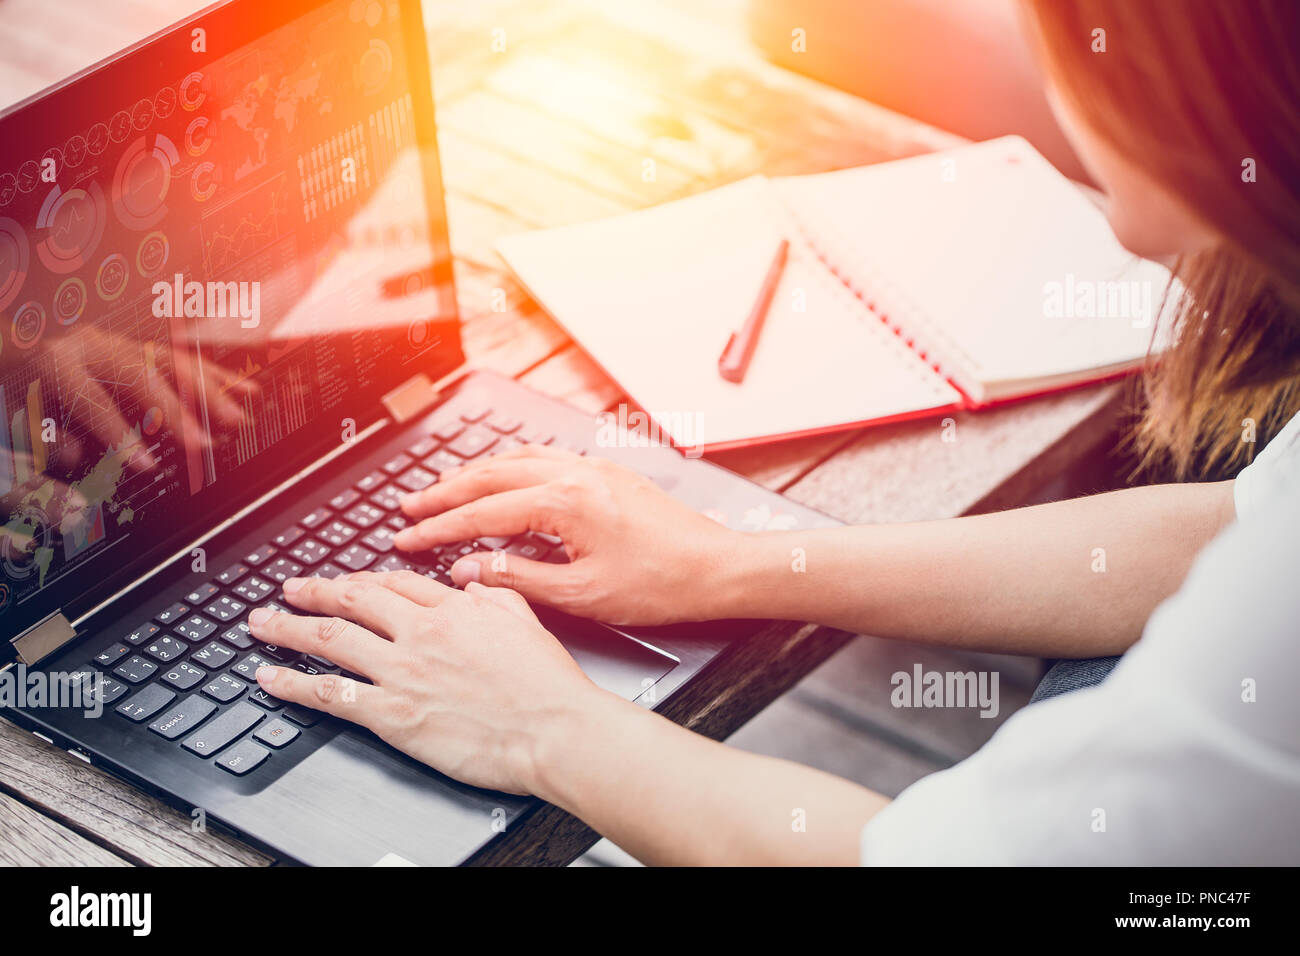 Asian Business woman work typing on laptop at coffee cafe workplace, Holiday working startup concept. Stock Photo